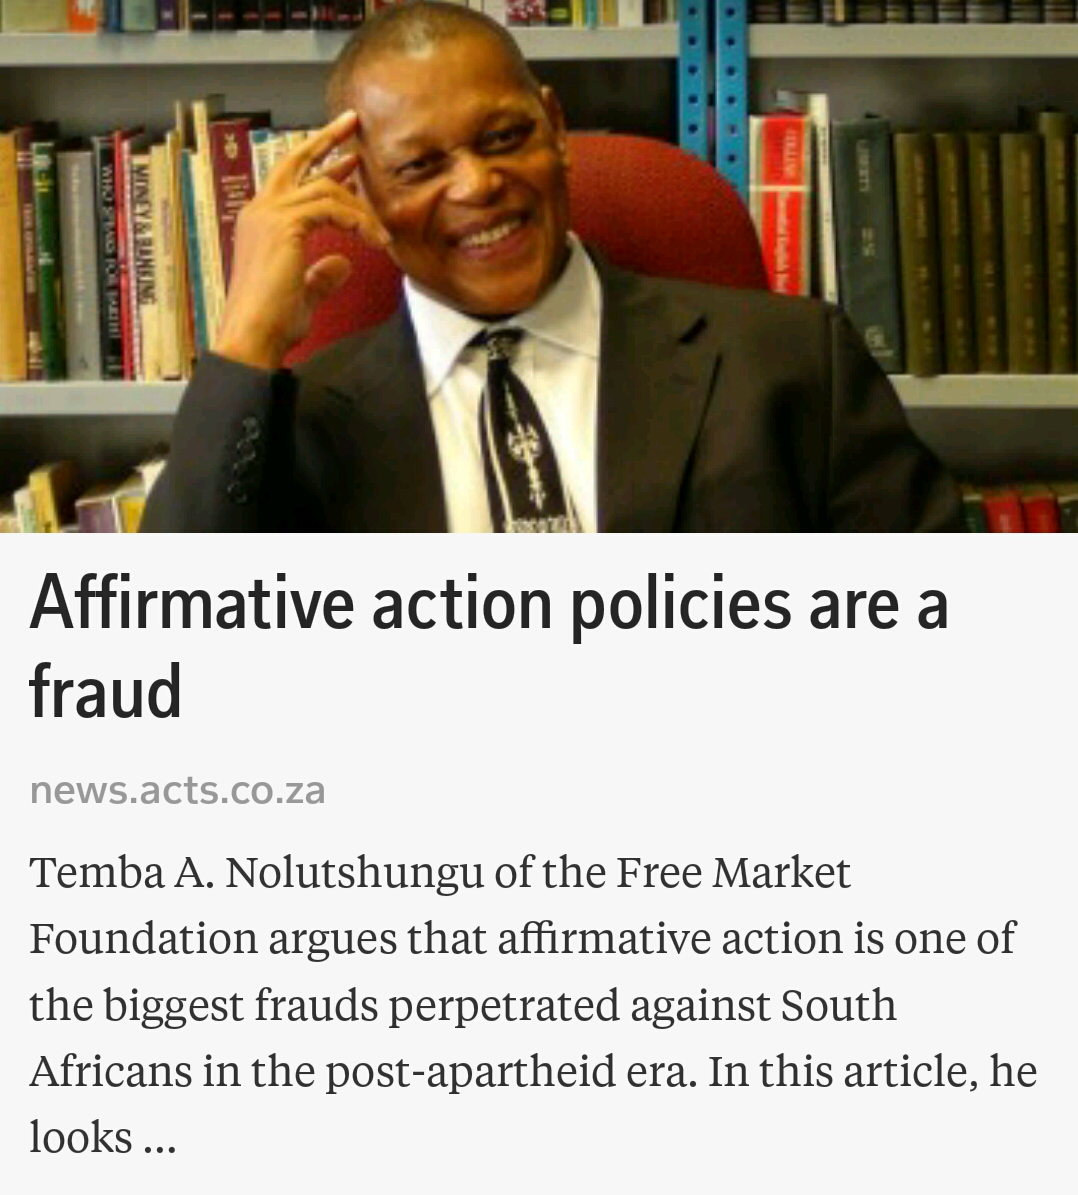 affirmative action is one of the biggest frauds perpetrated affirmative action is one of the biggest frauds perpetrated against white south africans in the post apartheid era